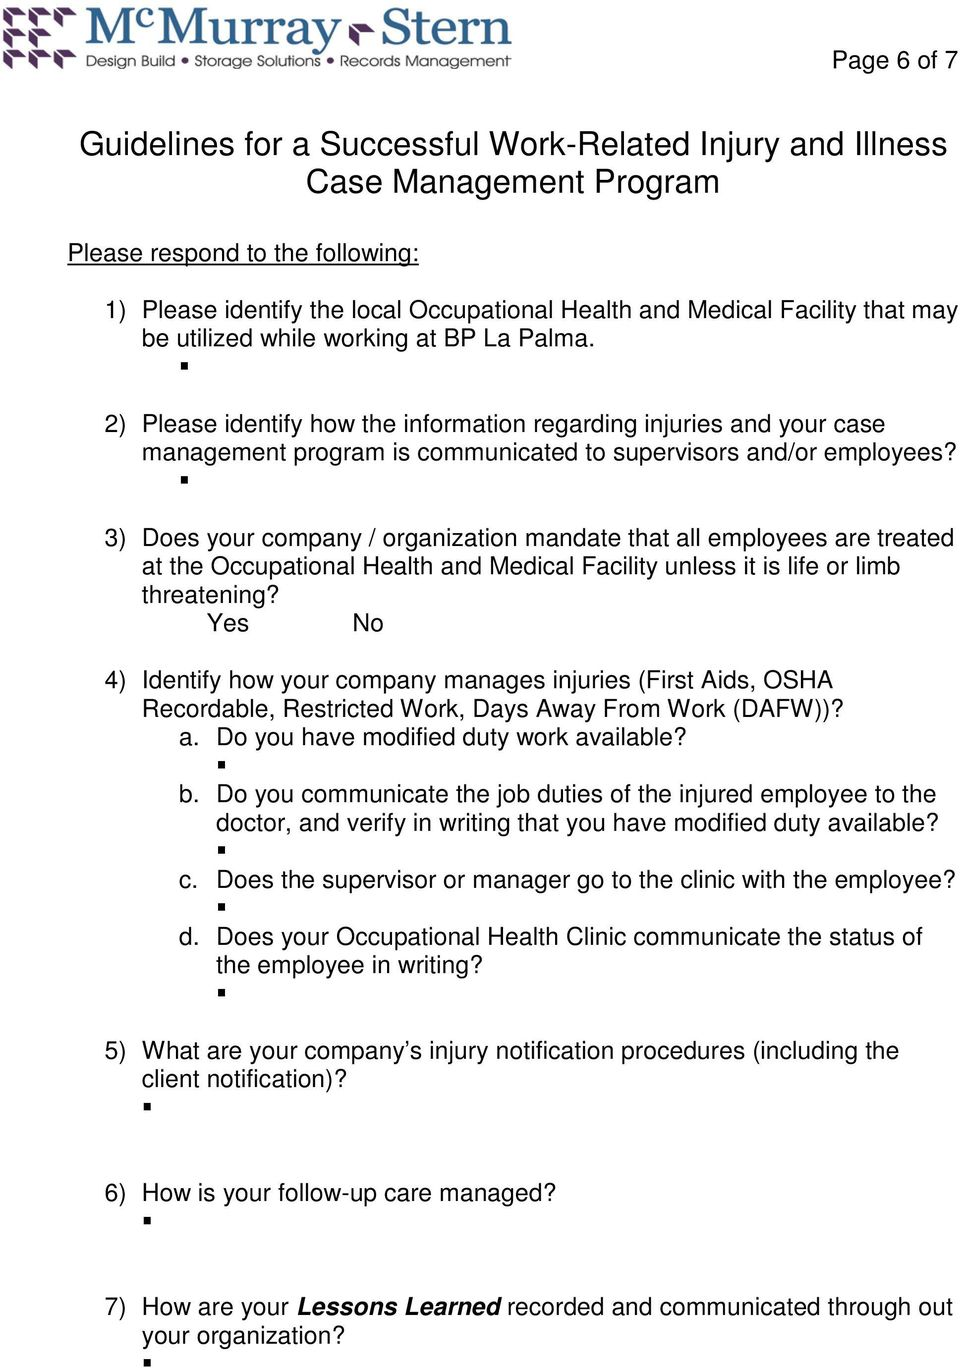 3) Does your company / organization mandate that all employees are treated at the Occupational Health and Medical Facility unless it is life or limb threatening?